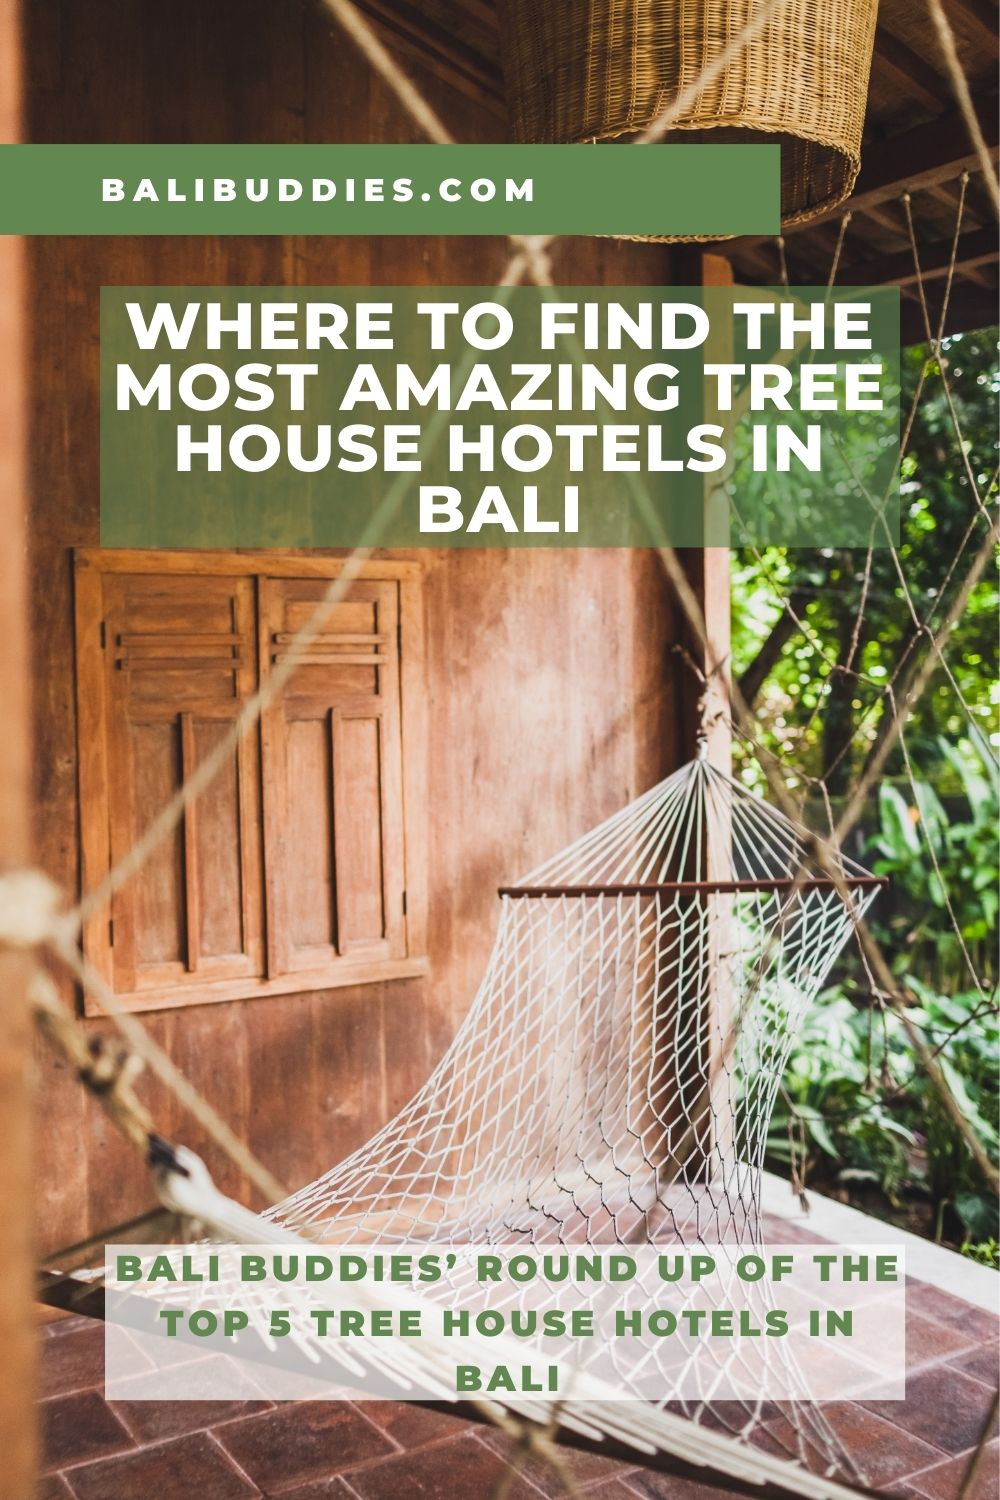 Top 5 Tree House Hotels in Bali